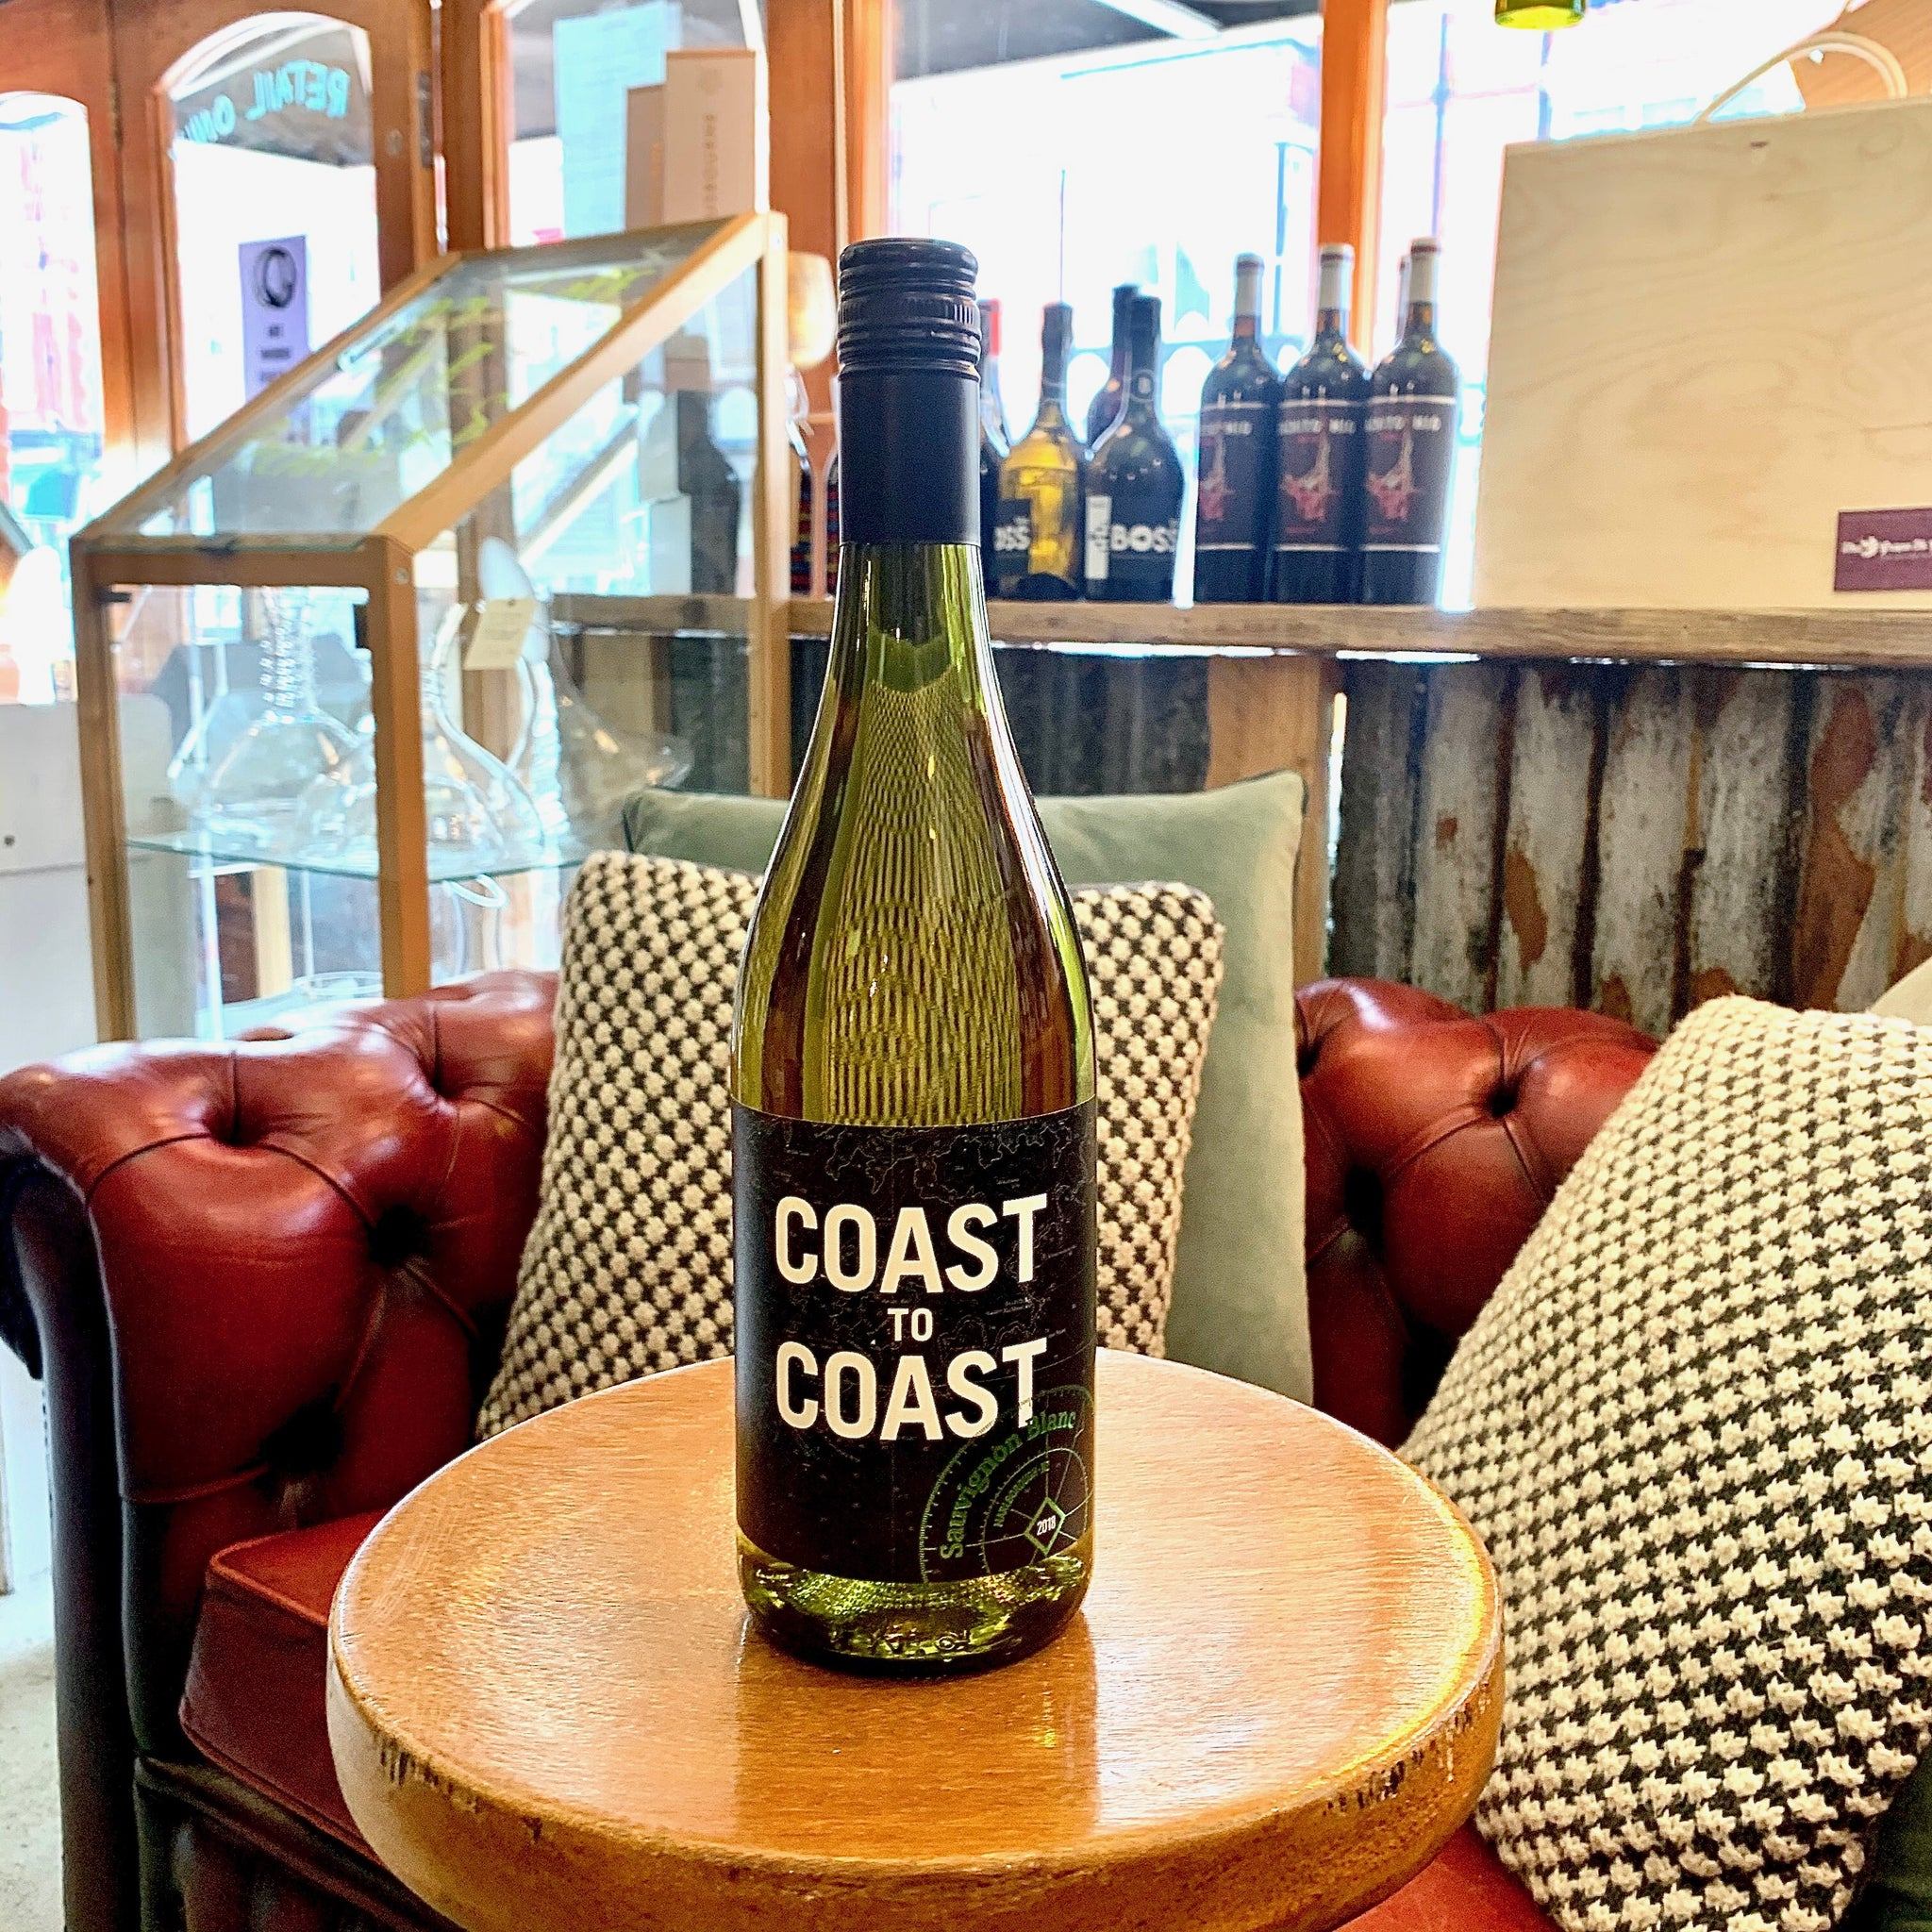 COAST TO COAST SAUVIGNON BLANC Marlborough/New Zealand